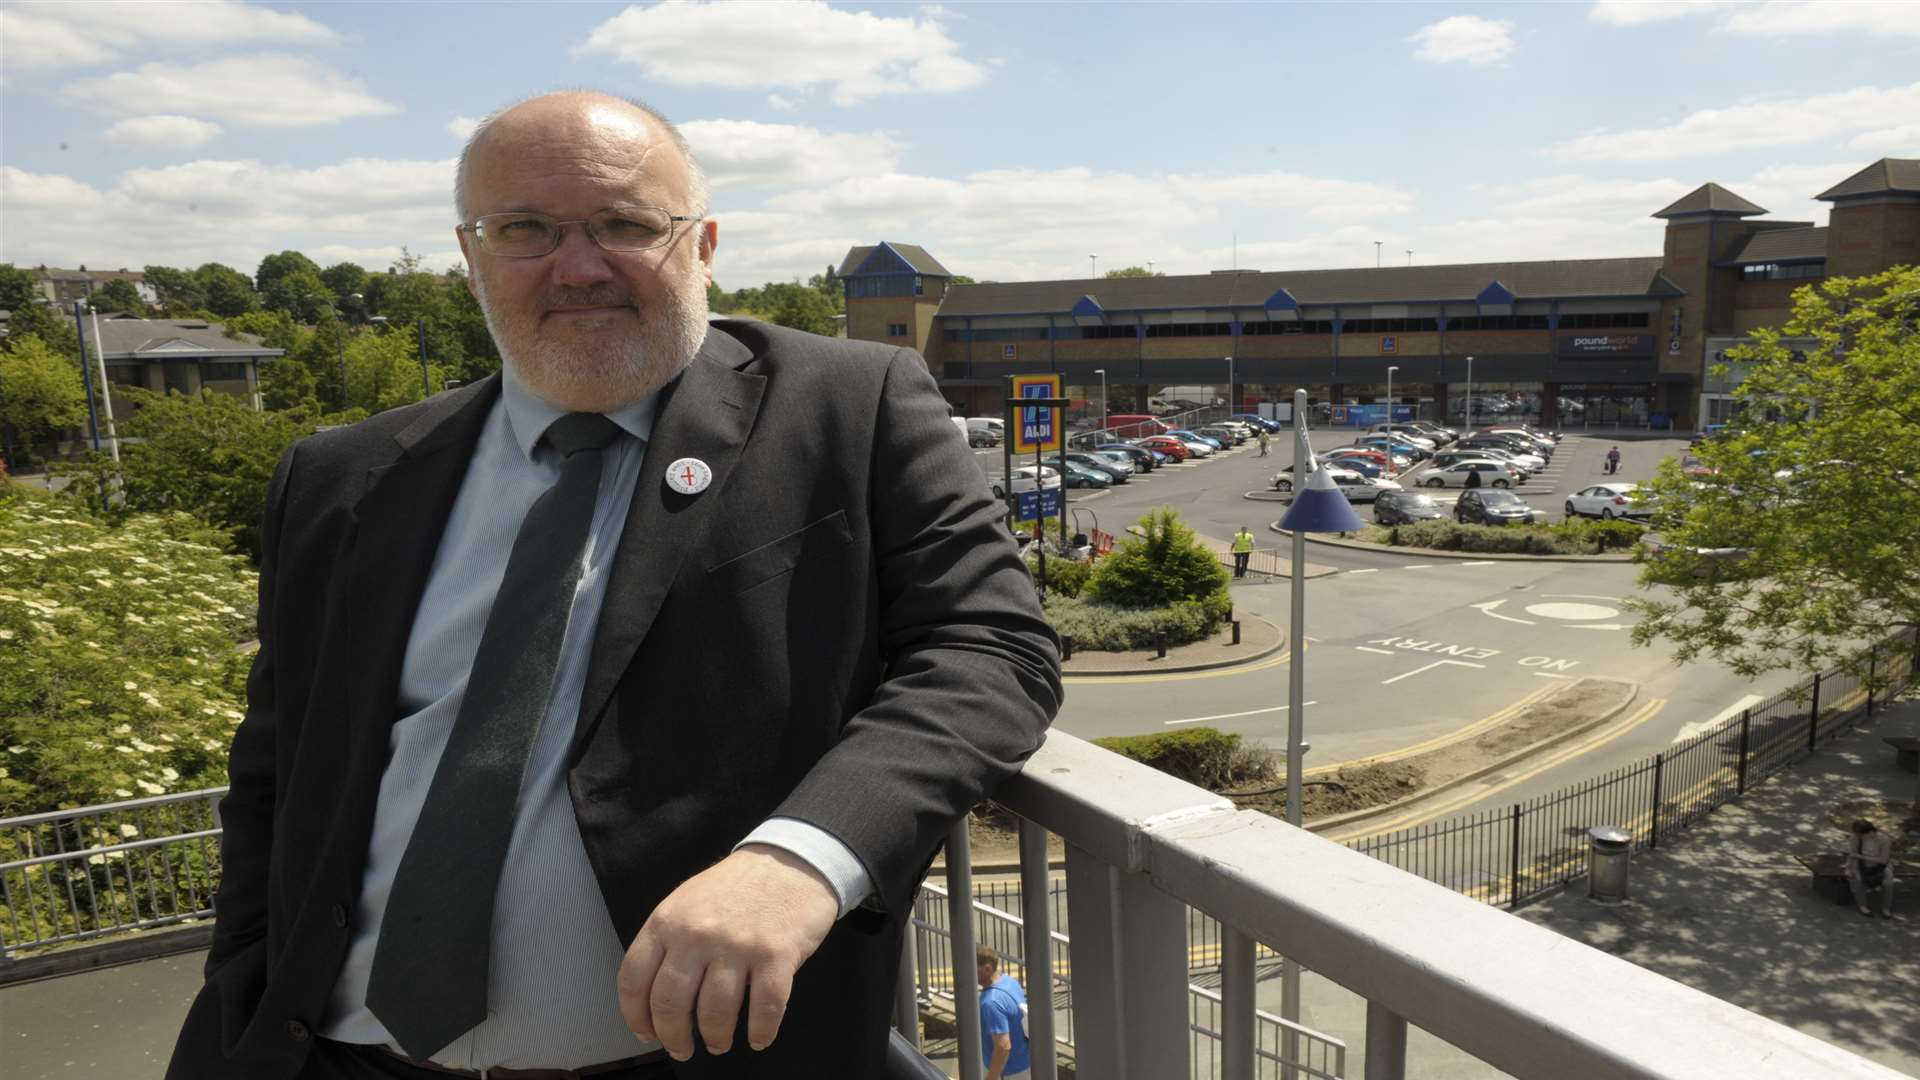 Dartford council leader Jeremy Kite